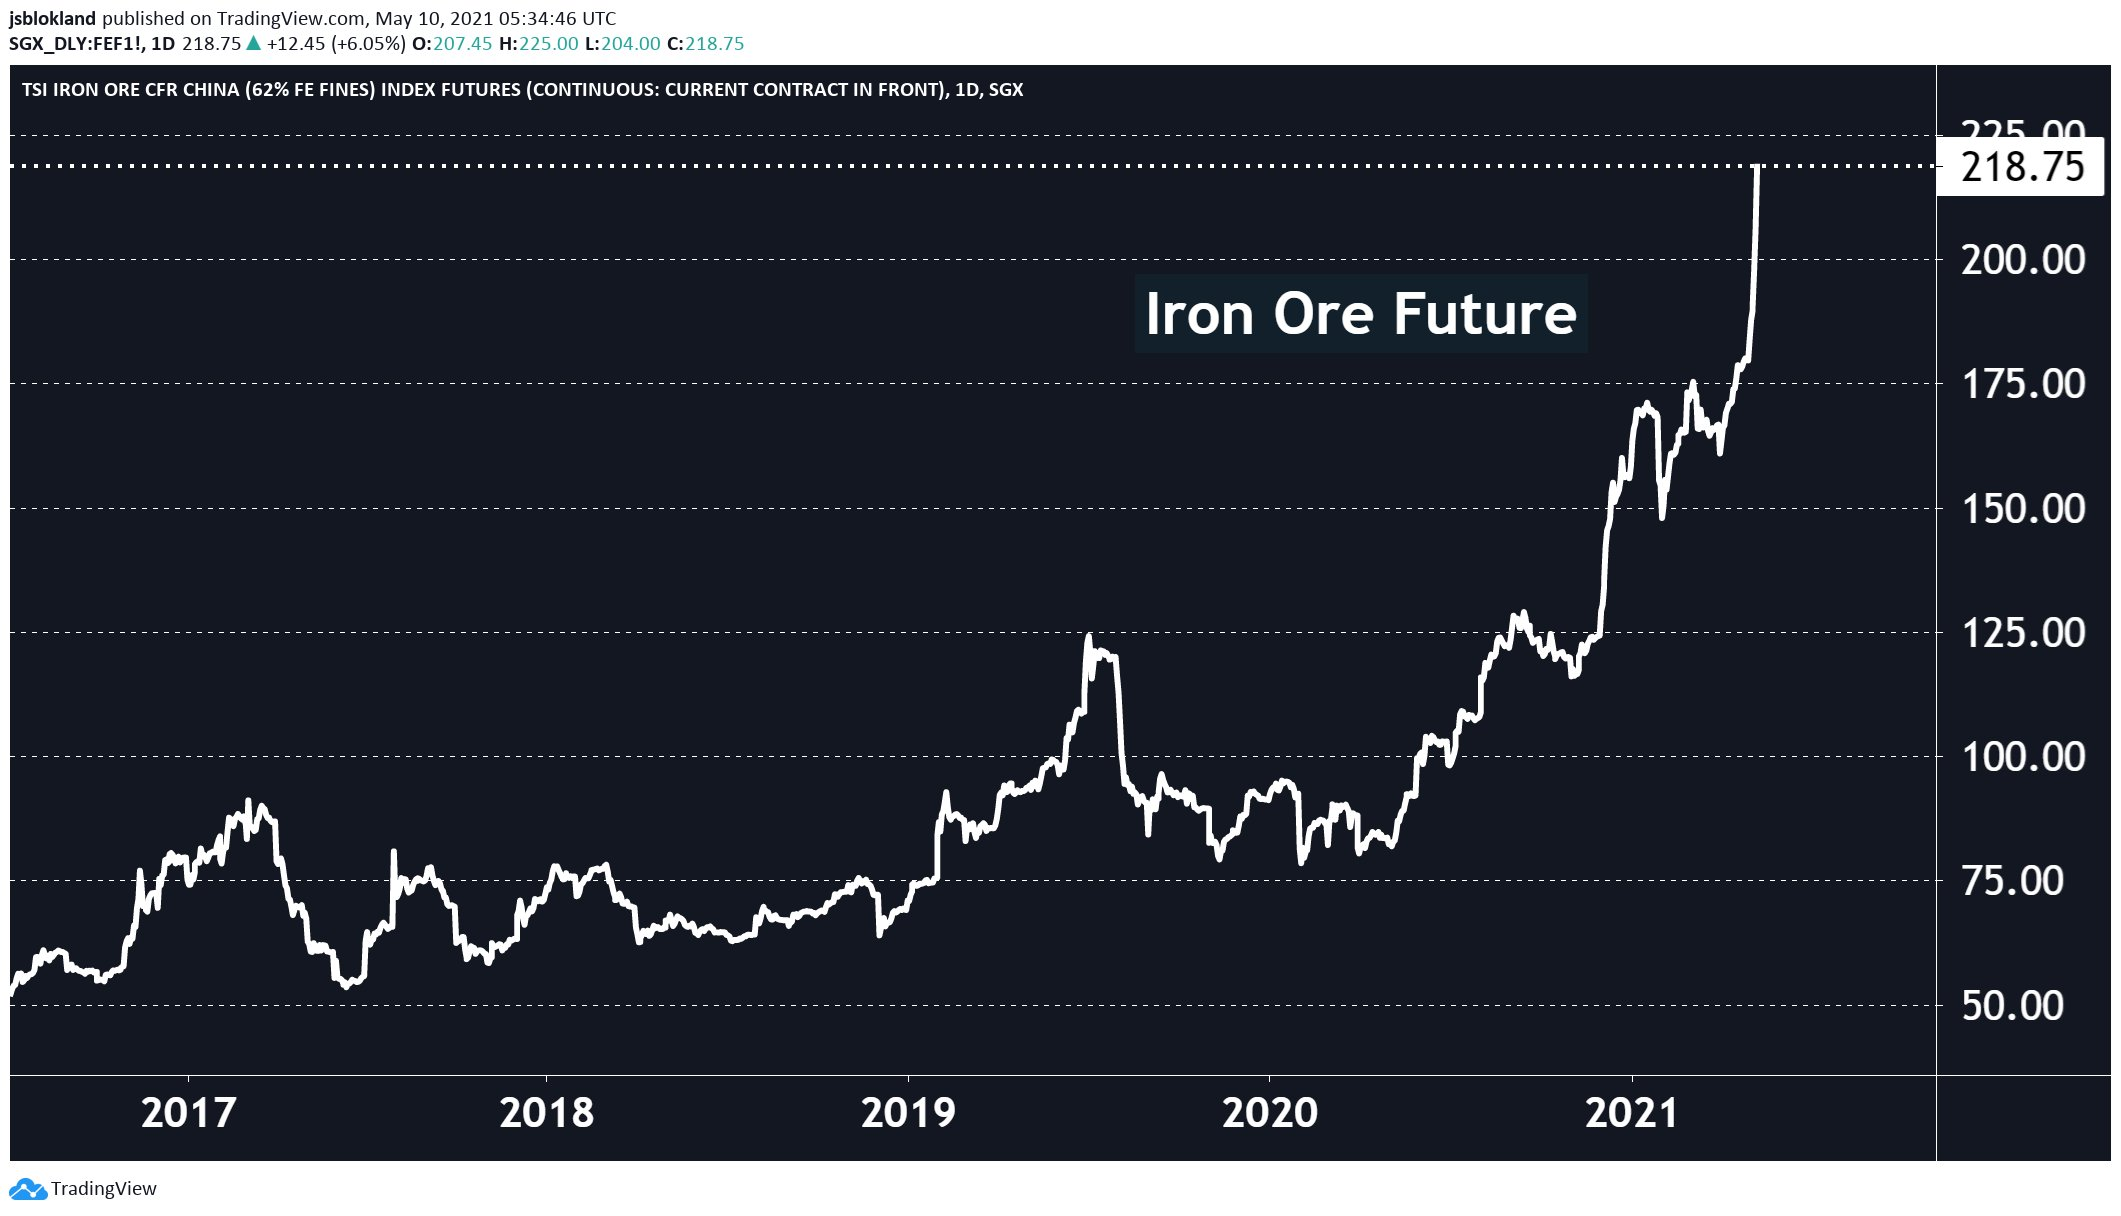 Commodities - iron and copper prices keep rising